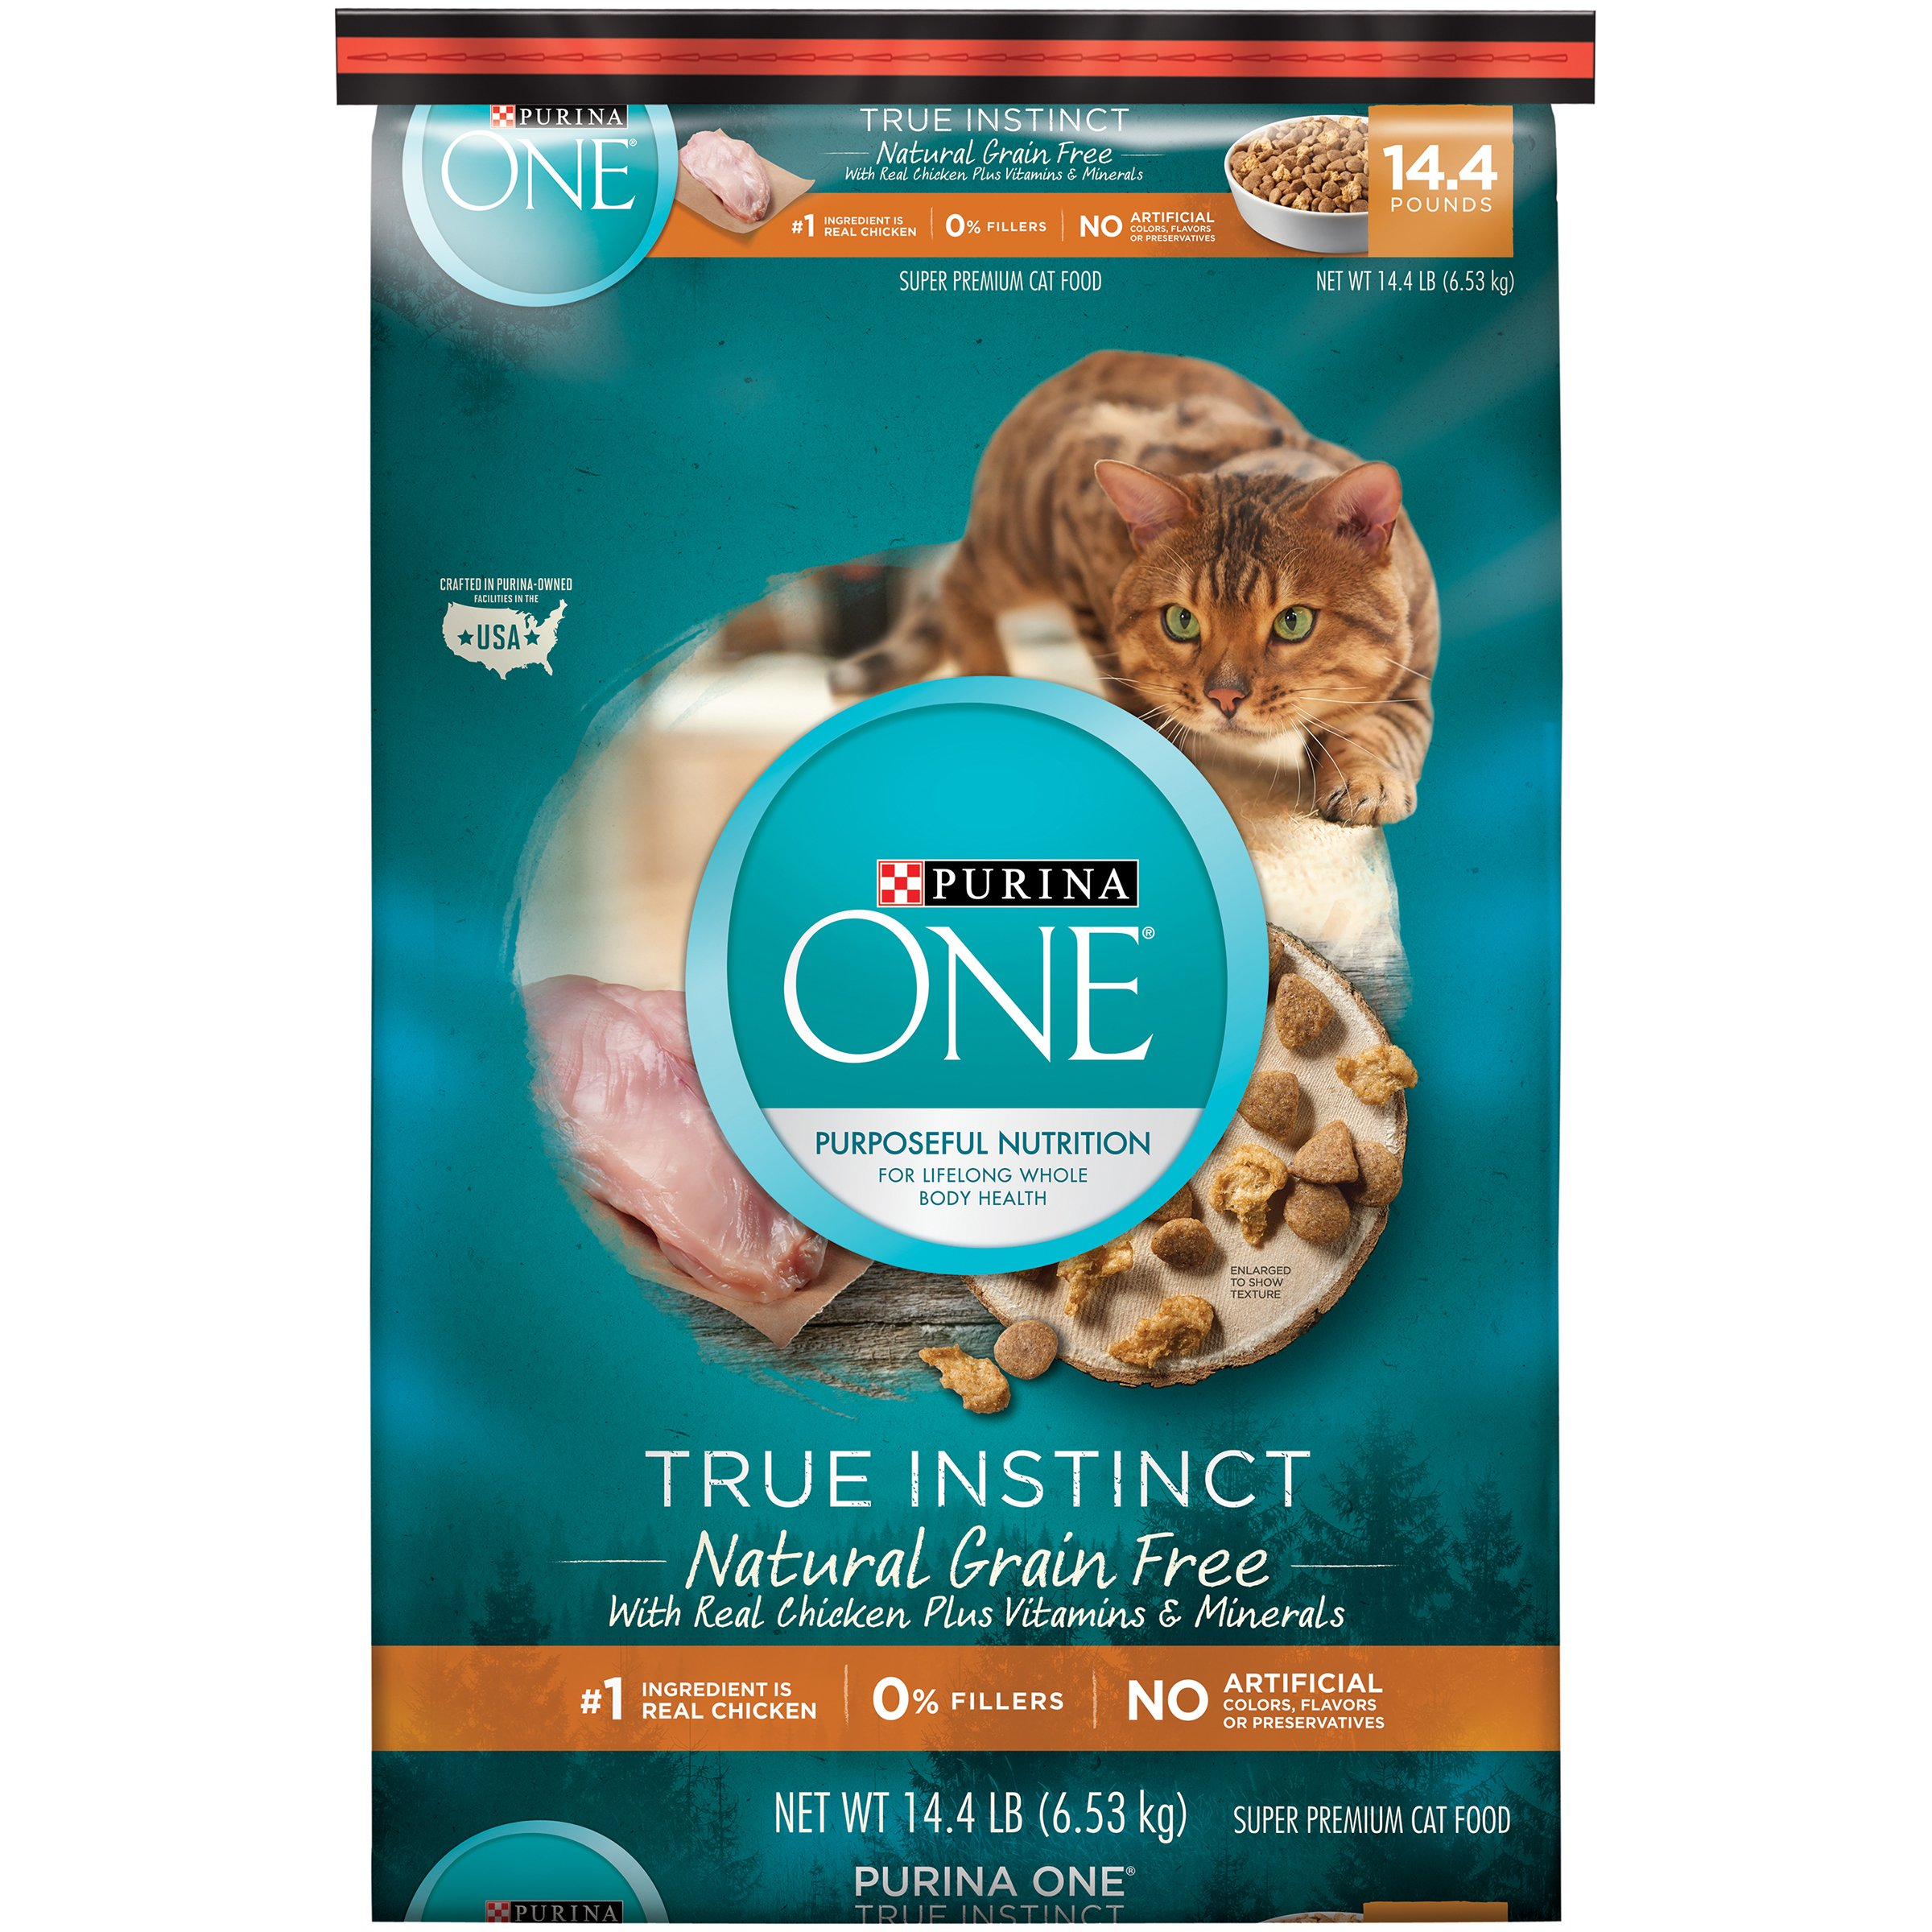 Purina ONE True Instinct Natural Grain Free With Real Chicken Plus Vitamins & Minerals Cat Food - (1) 14.4 lb. Bag